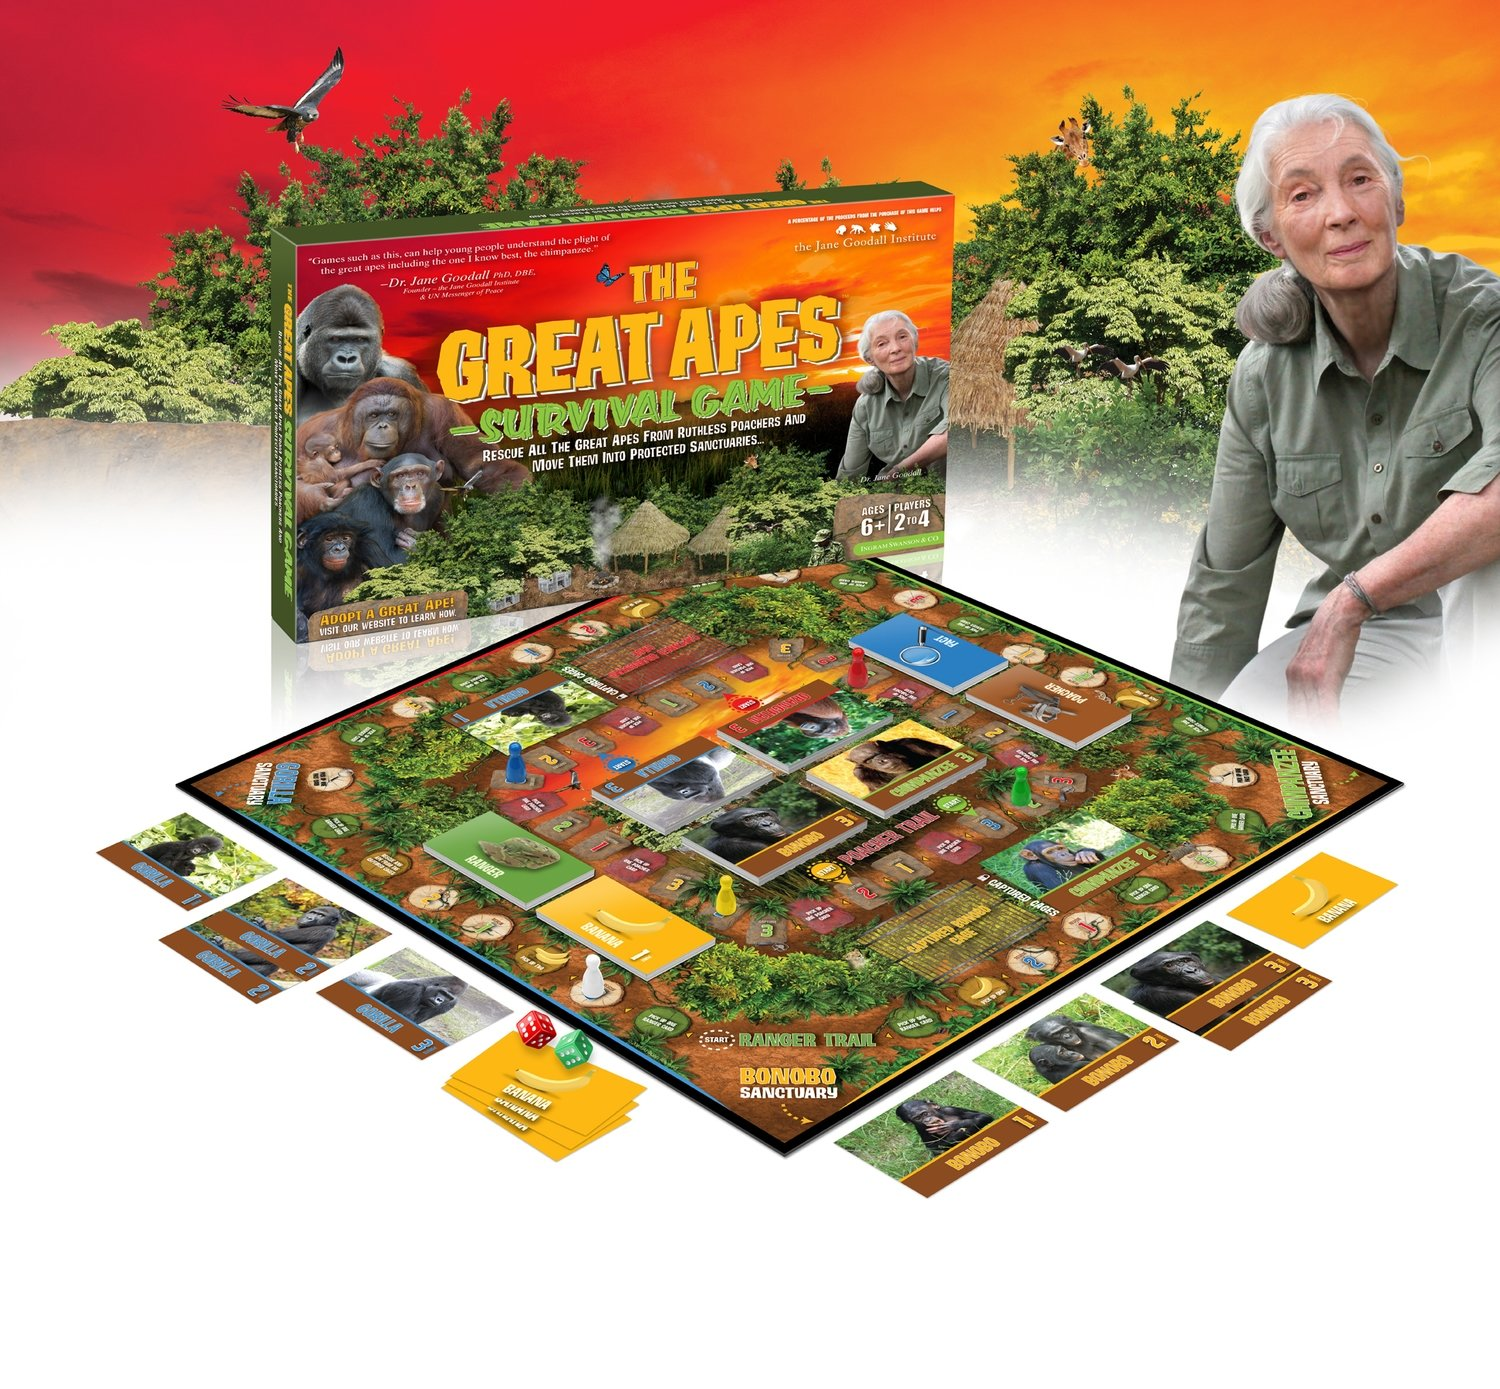 Great Apes Survival Game